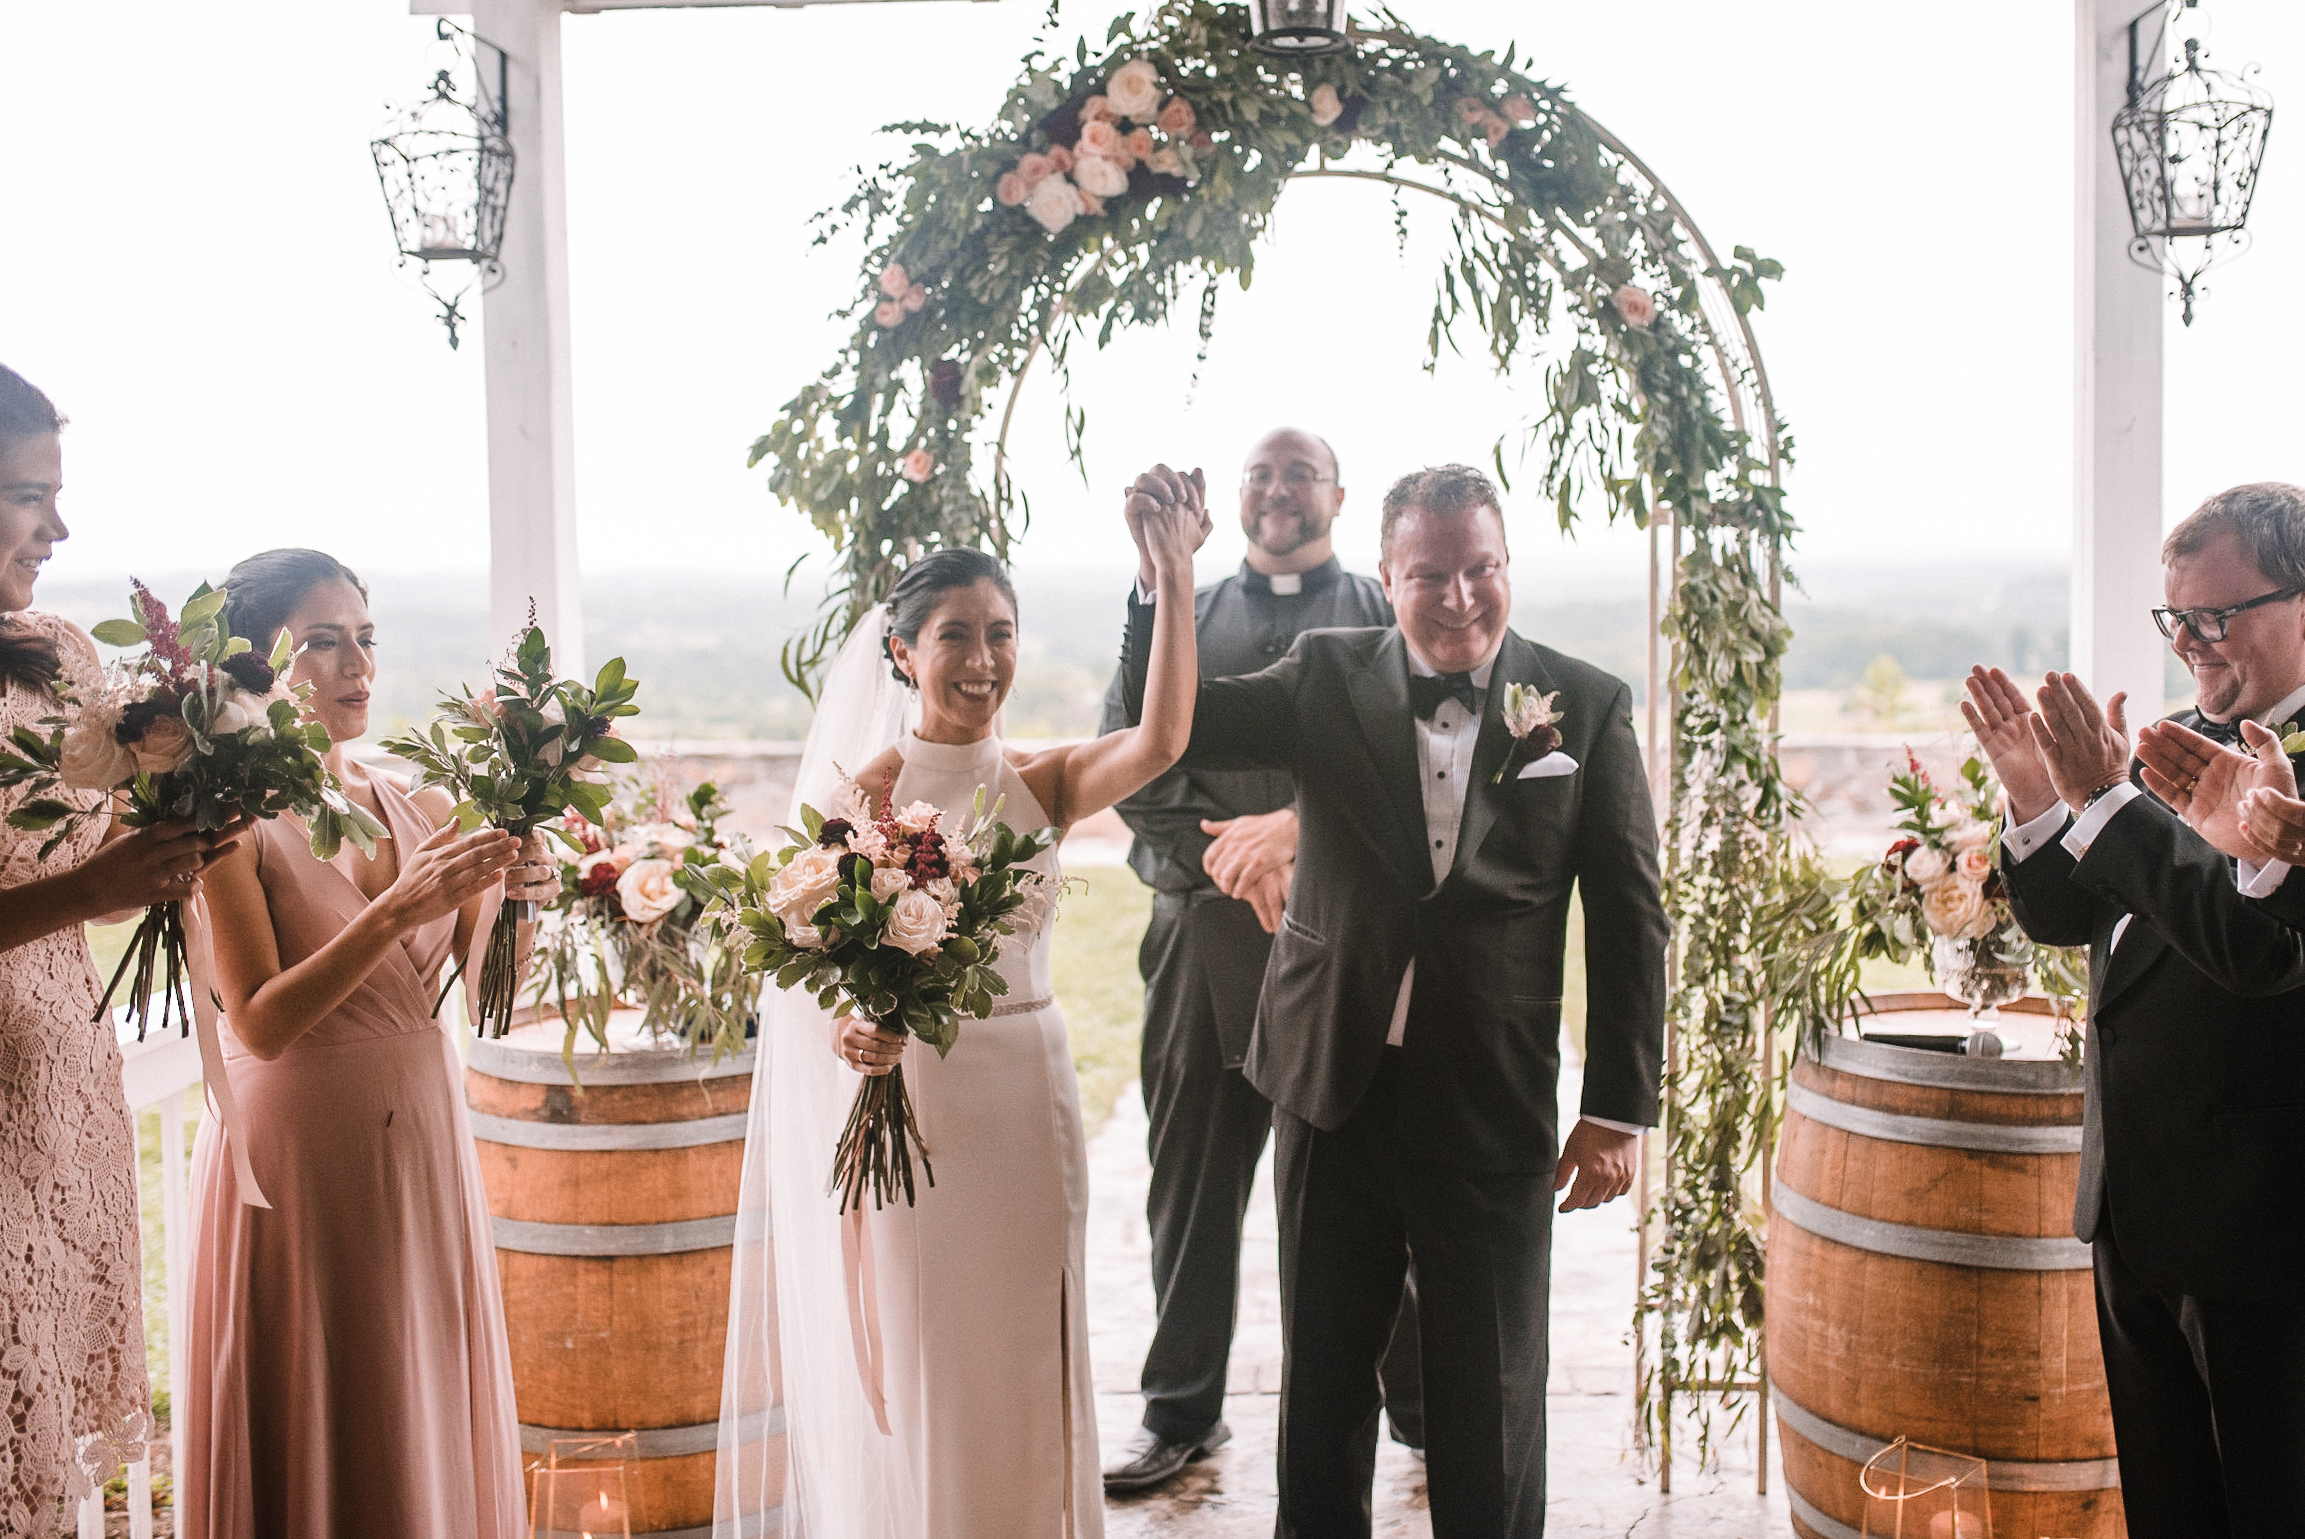 bride and groom smiling after ceremony at Bluemont Vineyard